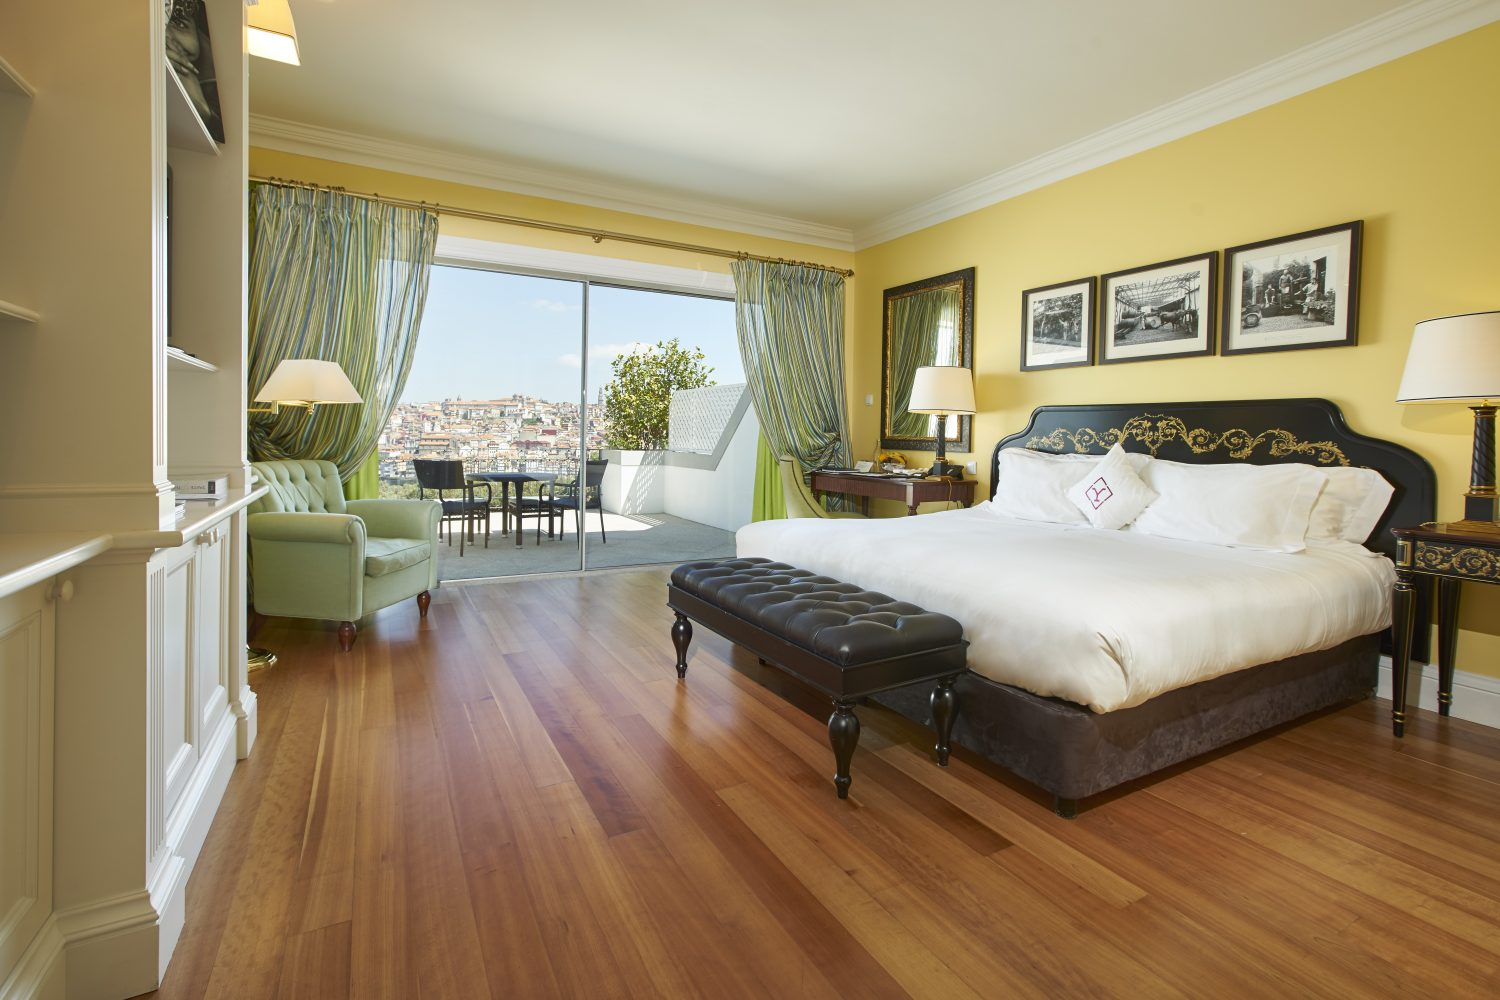 Executive Room with view to balcony at Yeatman Relais & Chateaux Hotel